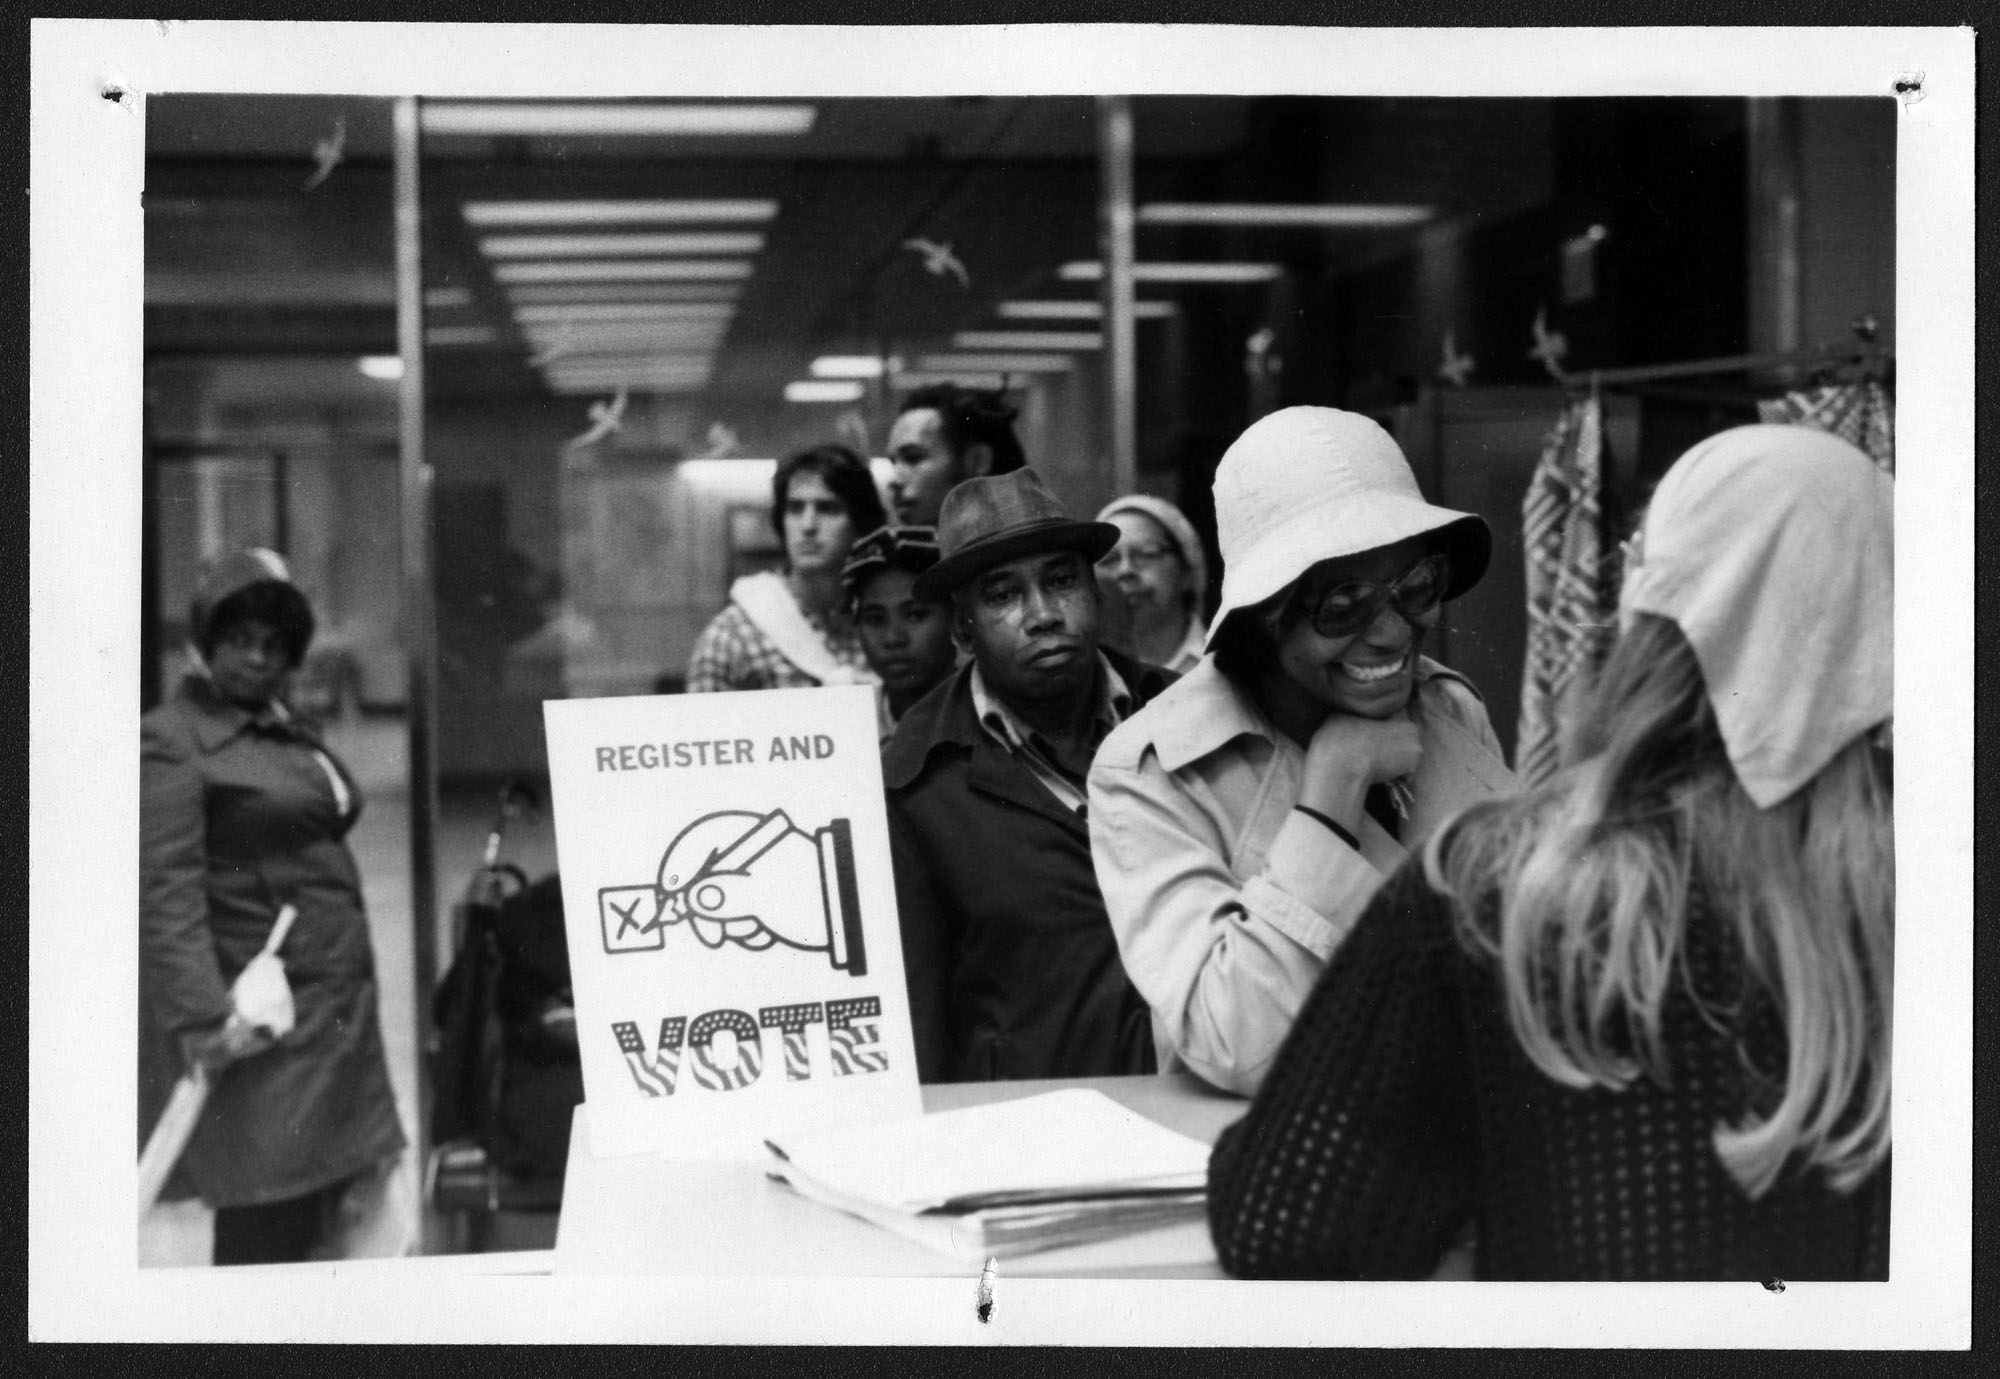 Register and Vote, Voter Education Project (Southern Regional Council), undated, Voter Education Project organizational records